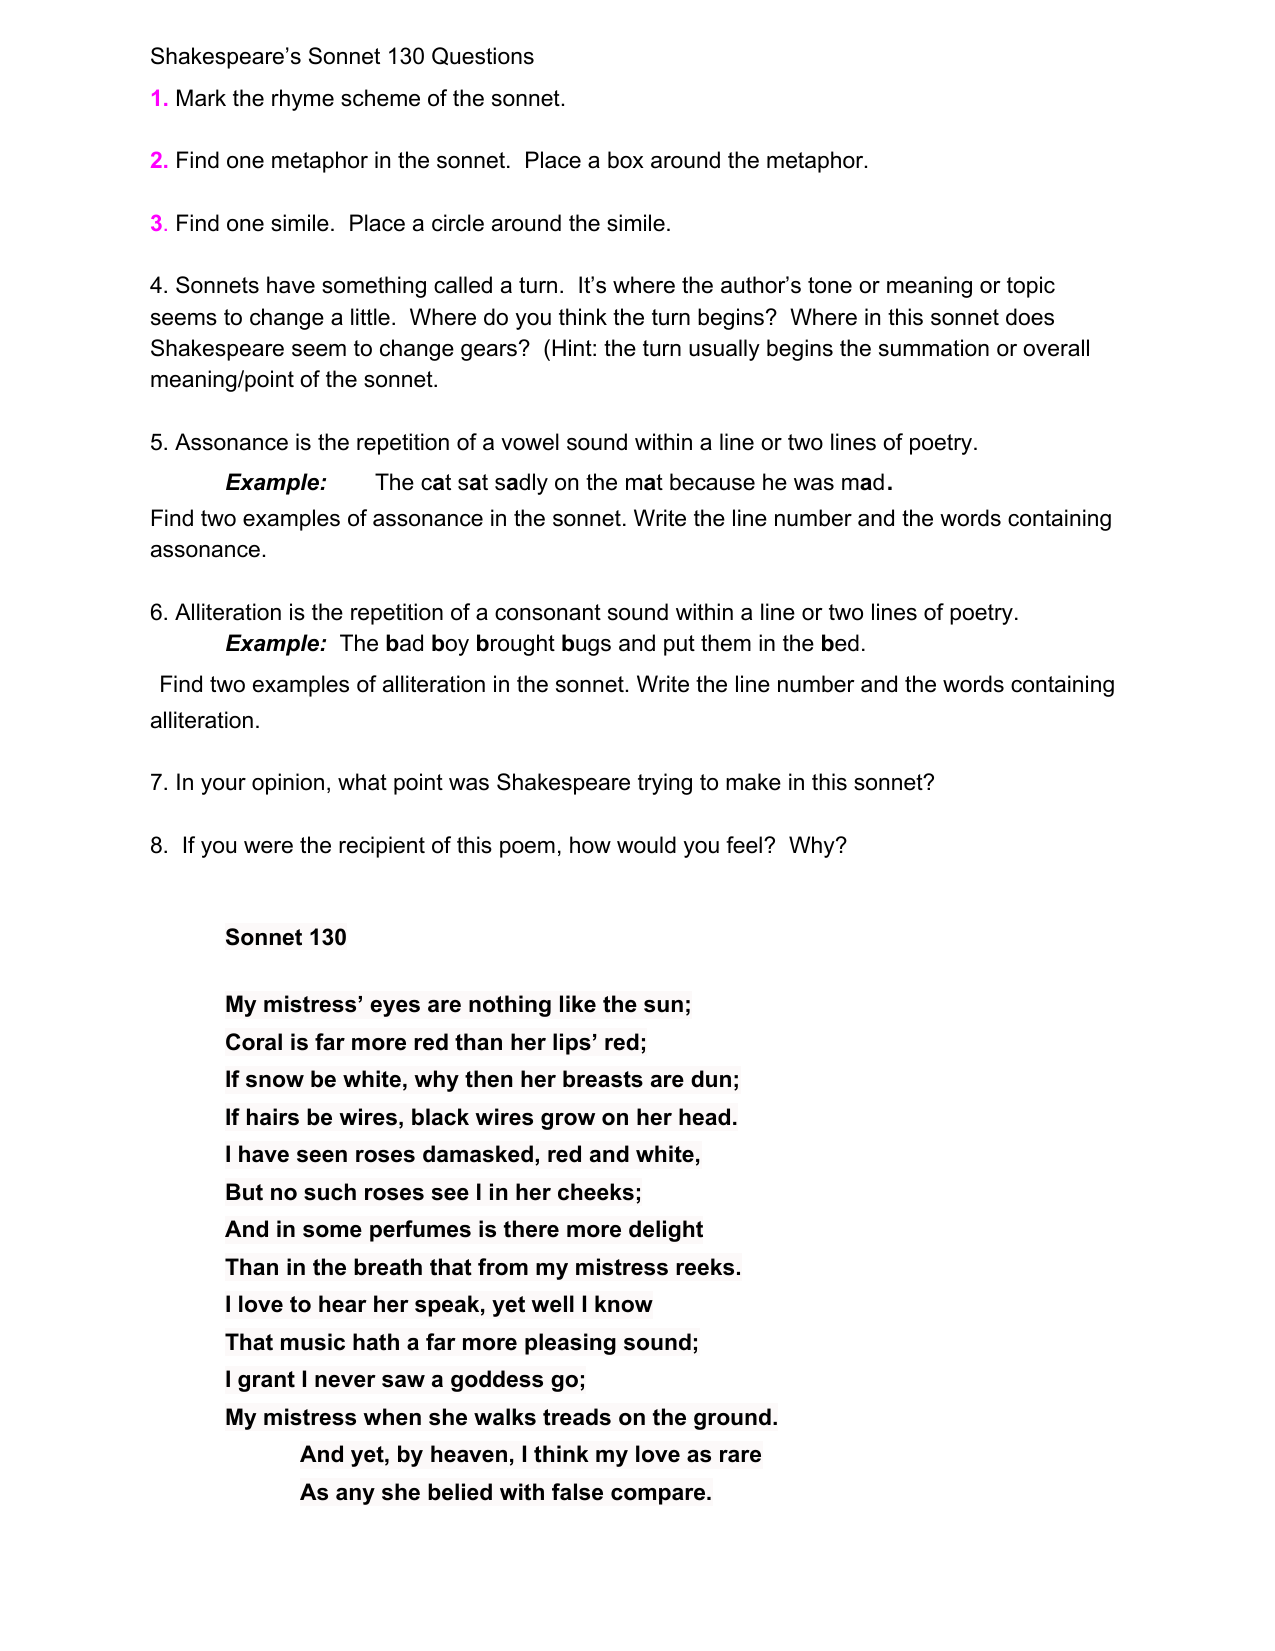 Shakespeares Sonnet 130 Questions 1 Mark The Rhyme Scheme